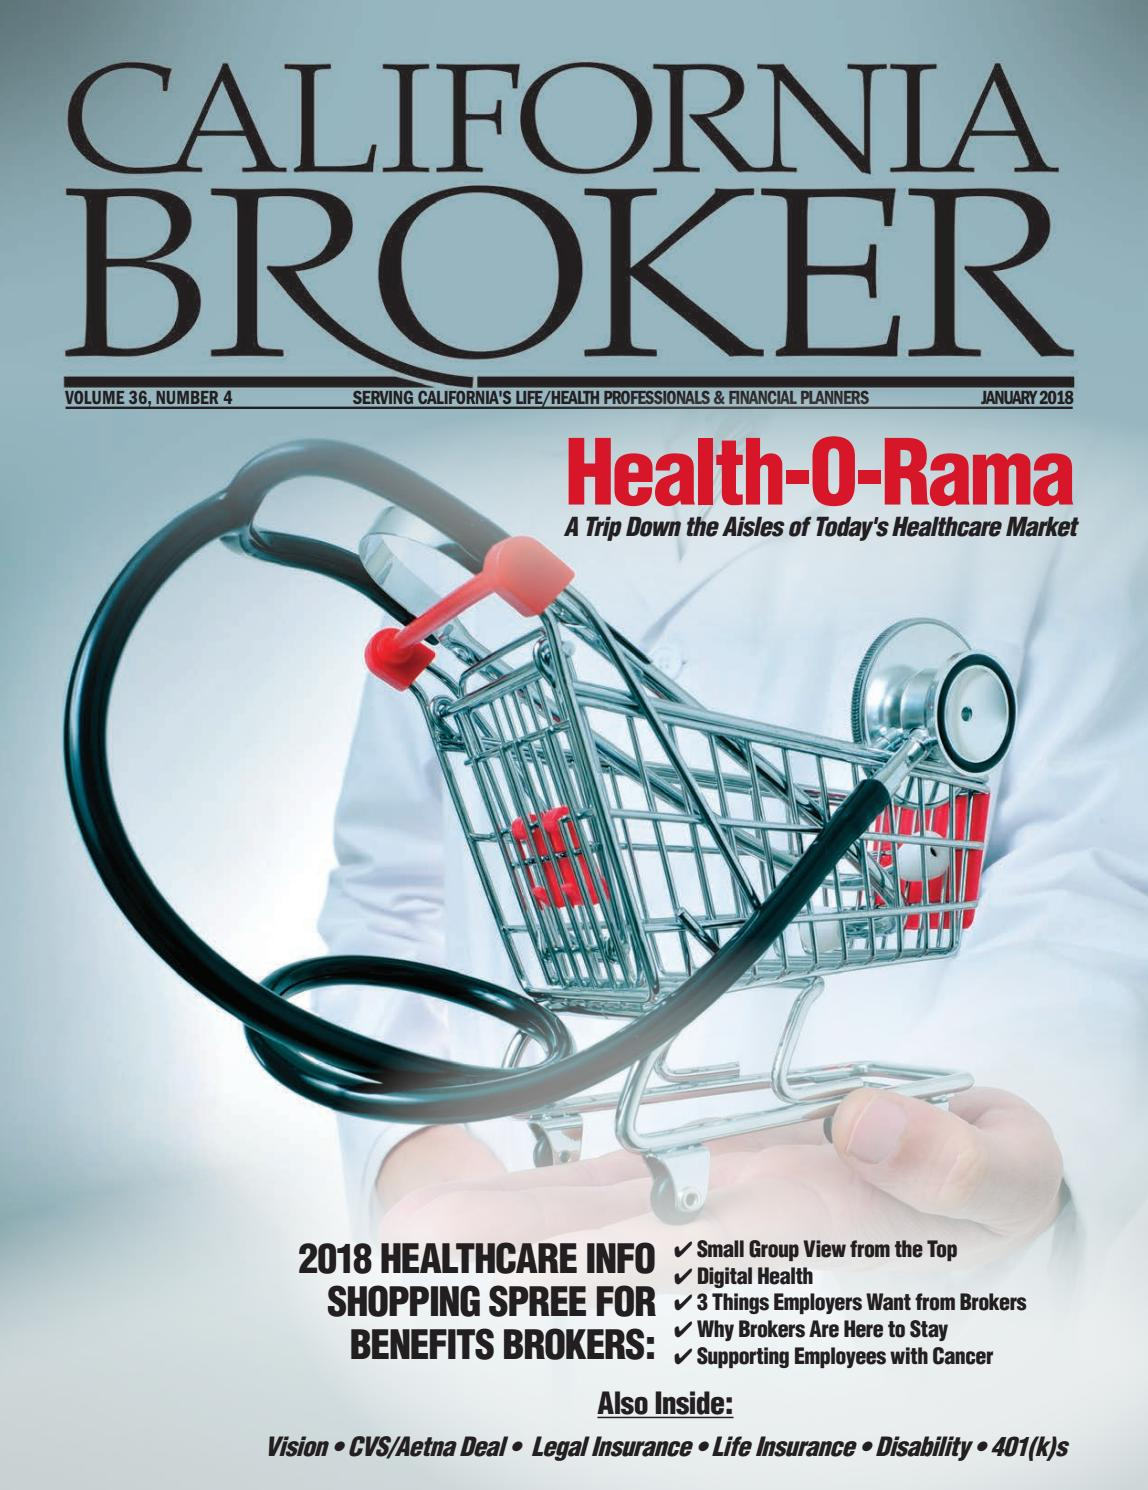 California Broker January 2018 Edition by California Broker